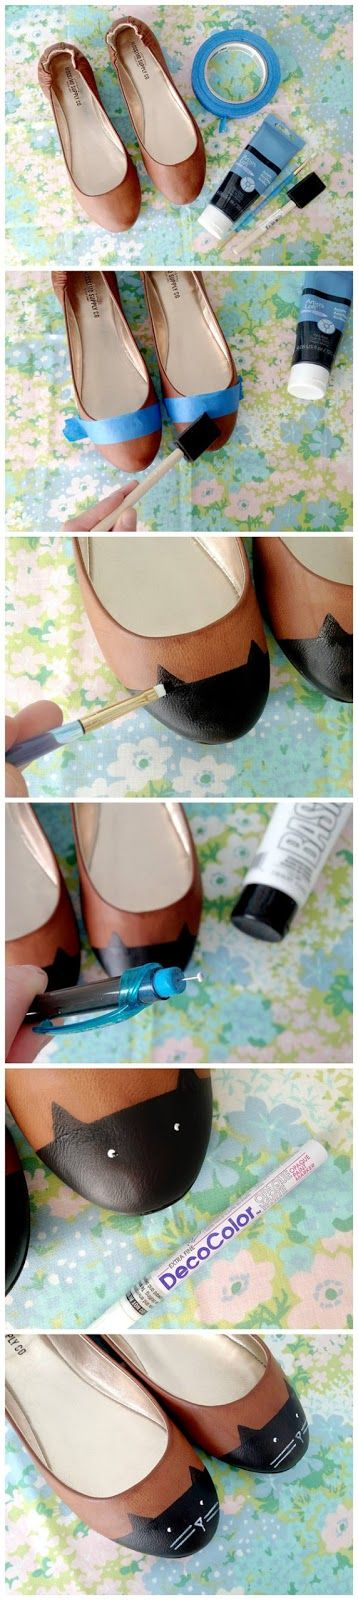 DIY Cat Toe Shoes- You could do just about anything you wanted with this idea-